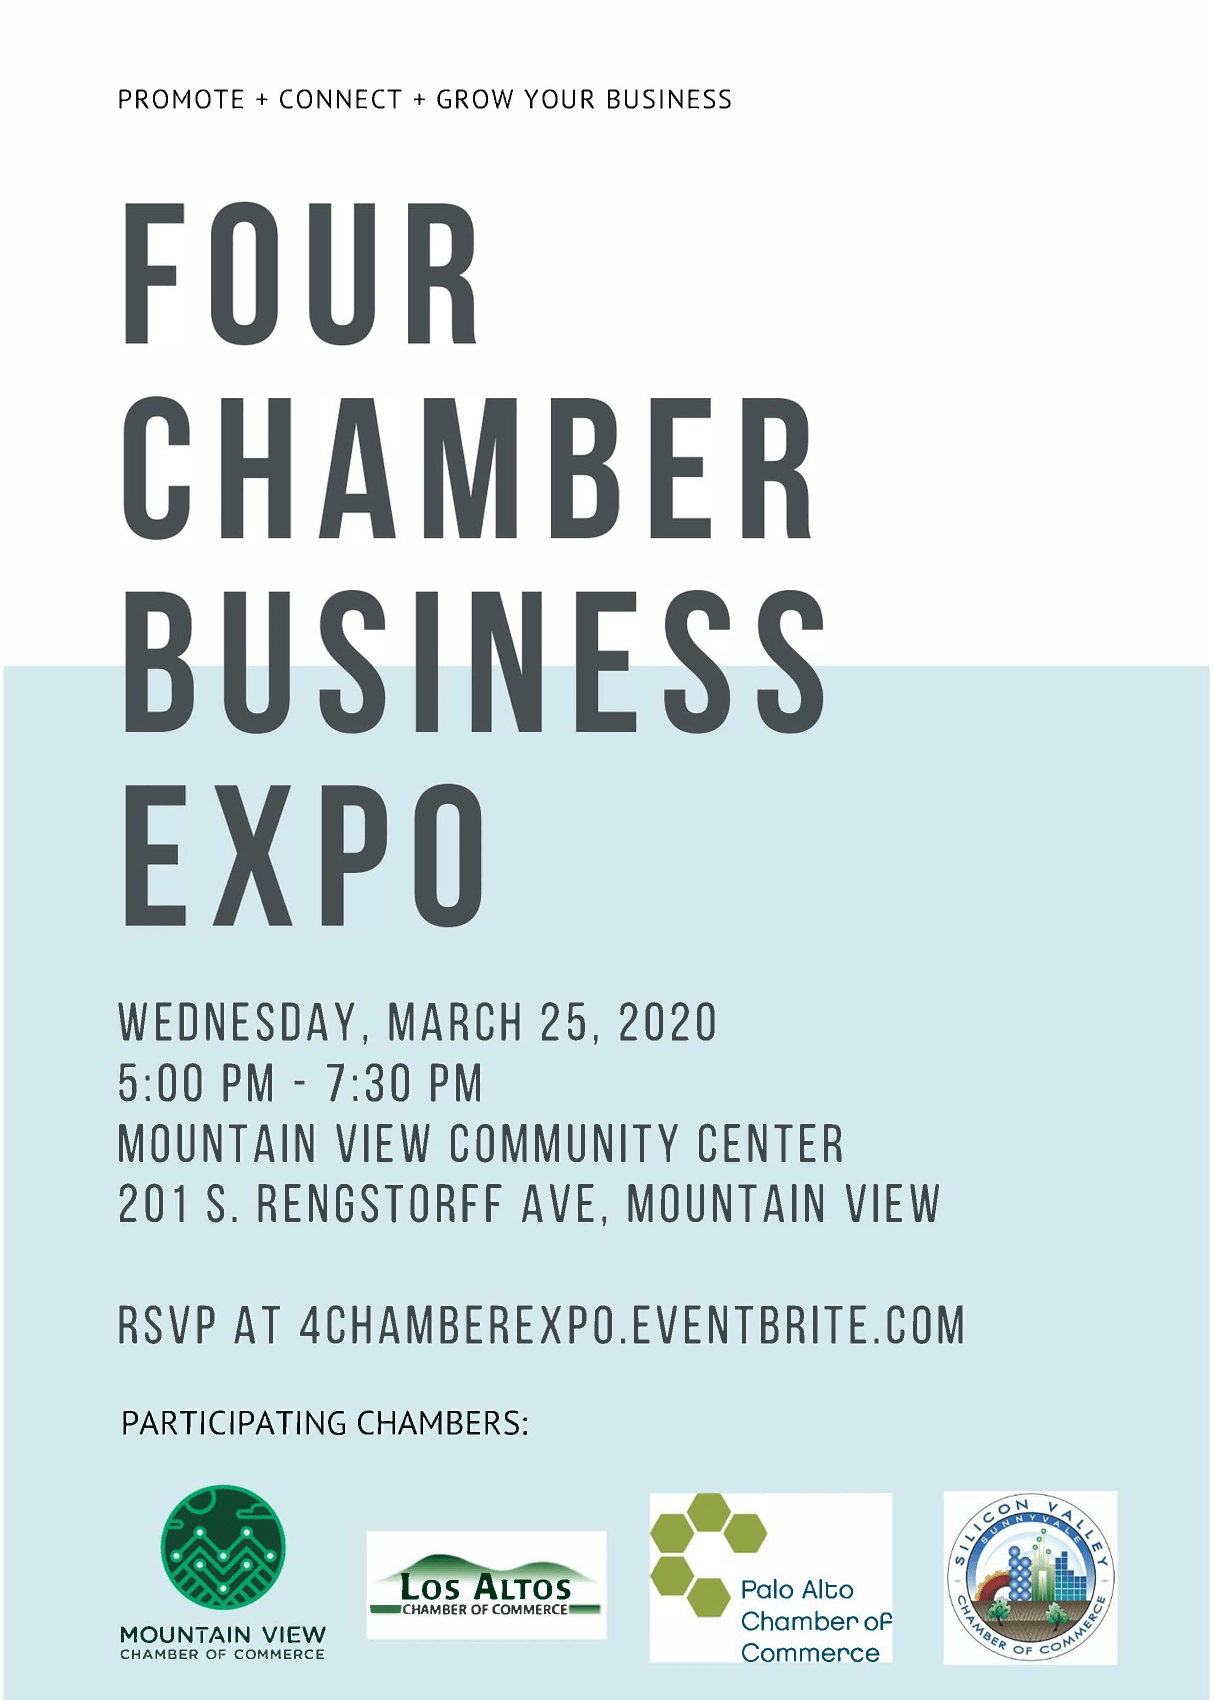 4 Chamber Expo 2020 is Wednesday, March 25th 2020 at Mountain View Community Center, 5:00 - 7:30 pm